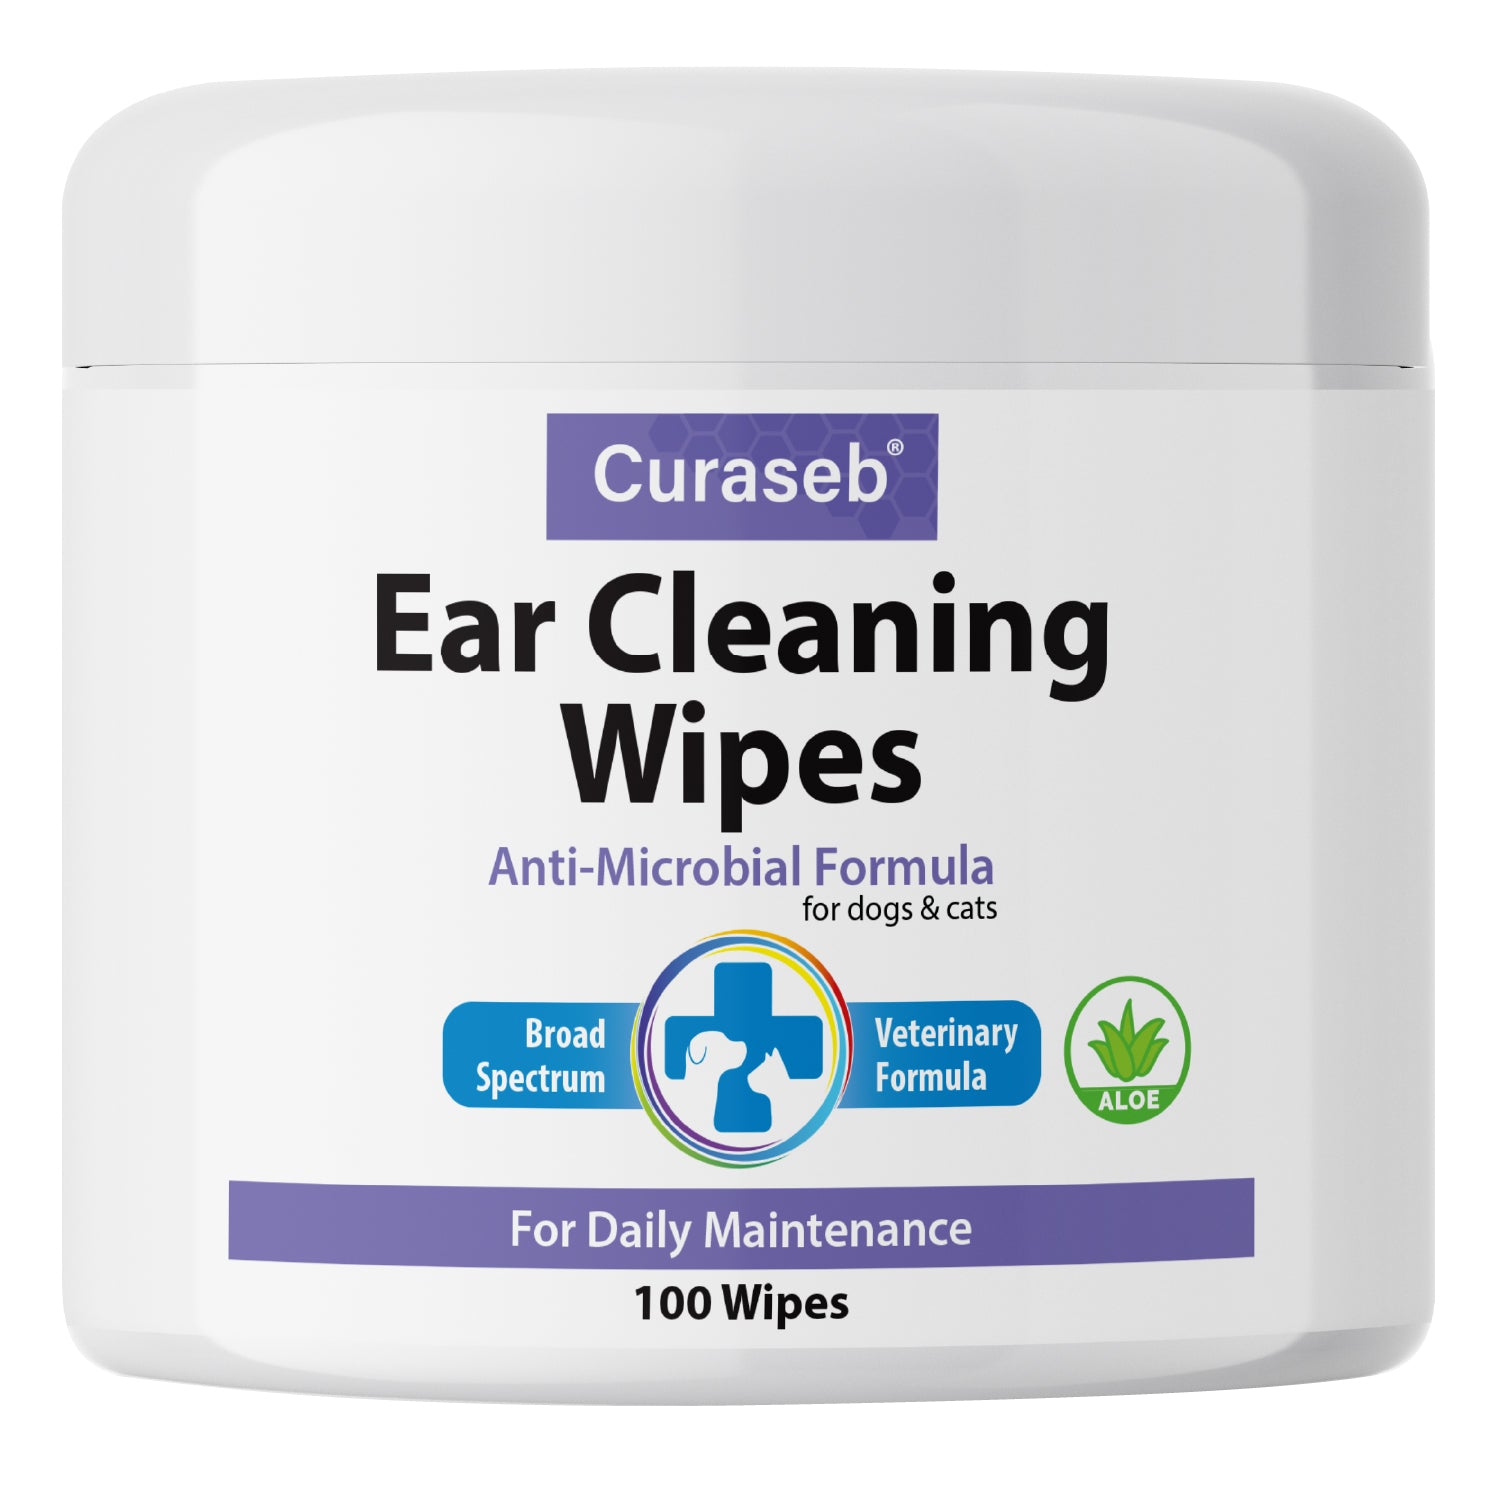 Curaseb Otic Ear Cleaning Wipes for Dogs and Cats